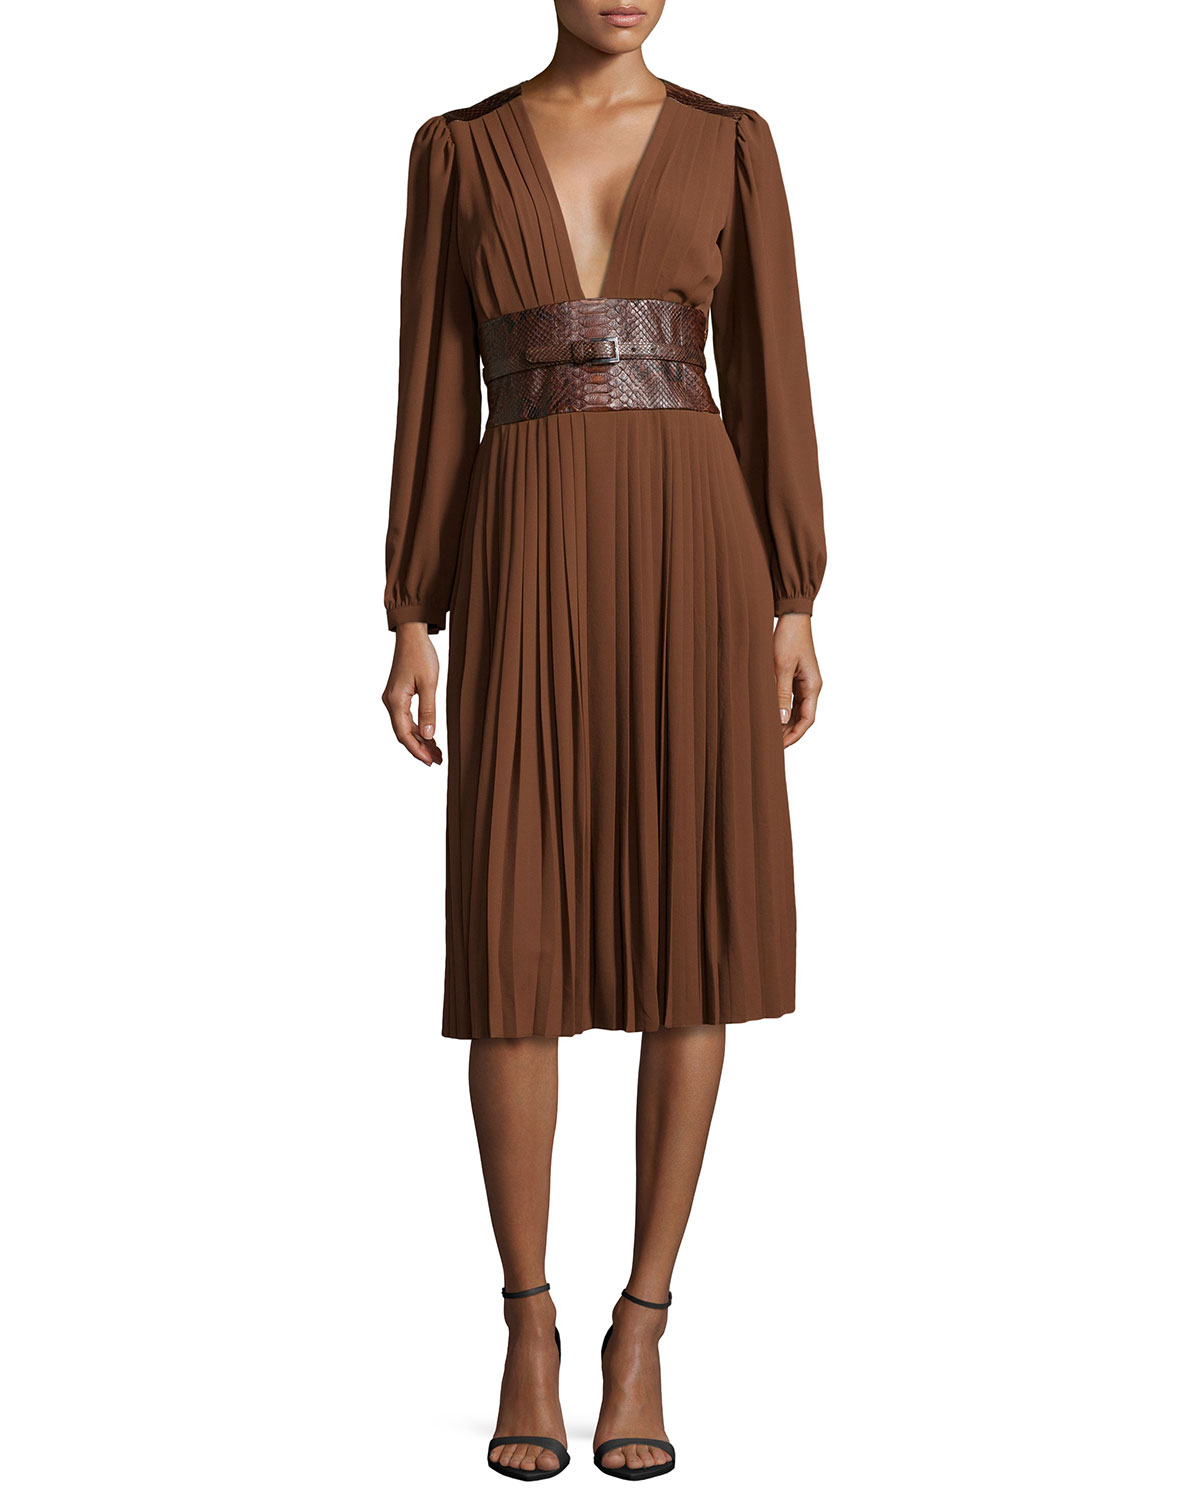 Michael kors Pleated Dress With Embossed Belt in Brown | Lyst